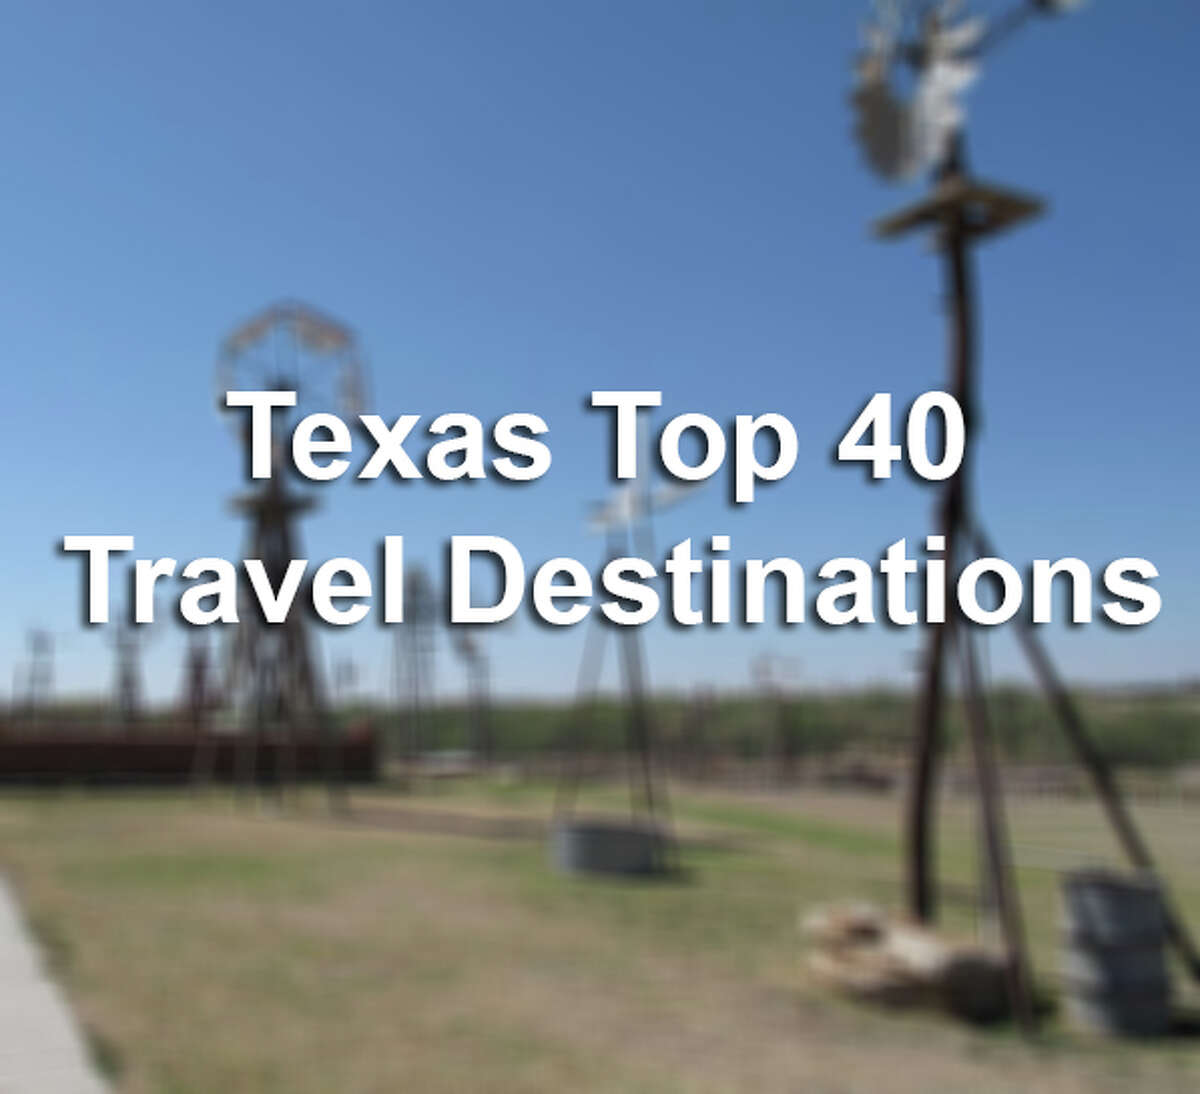 With the combination of culture, theme parks and the famed River Walk, voters named San Antonio the top travel destination in the state, Texas Highways Magazine announced Monday. The magazine hosted the year-long competition that ranked 40 best travel sites, and the Alamo City was able to claim, the top spot over well-known sites such as Big Bend, Padre Island and Garner State Park. Click through the slideshow above to see the top 40 travel destinations, named by Texas Highway Magazine.